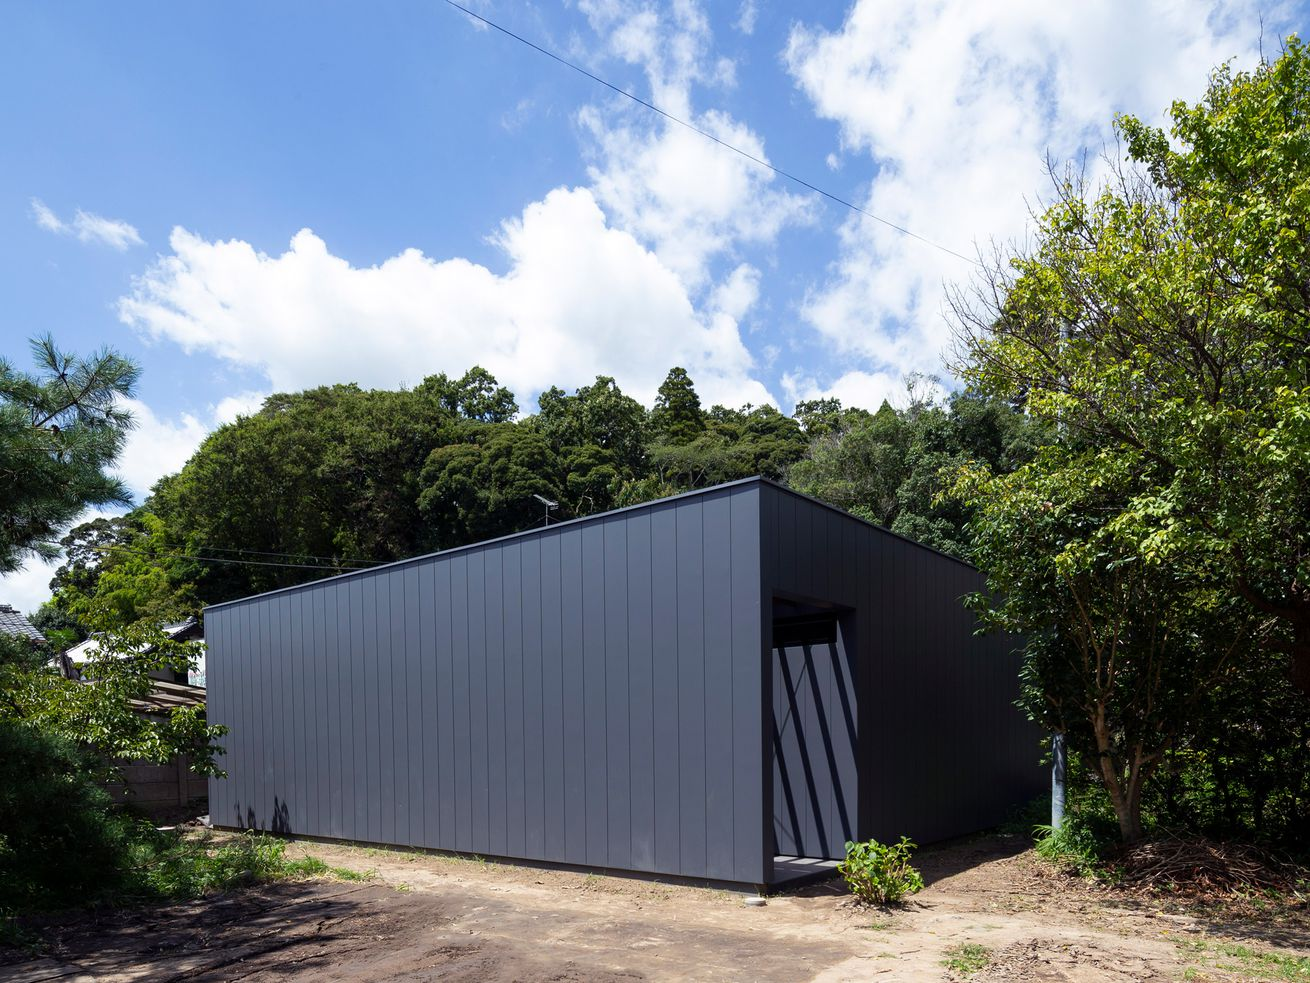 A black-colored boxy house is surrounded by trees.